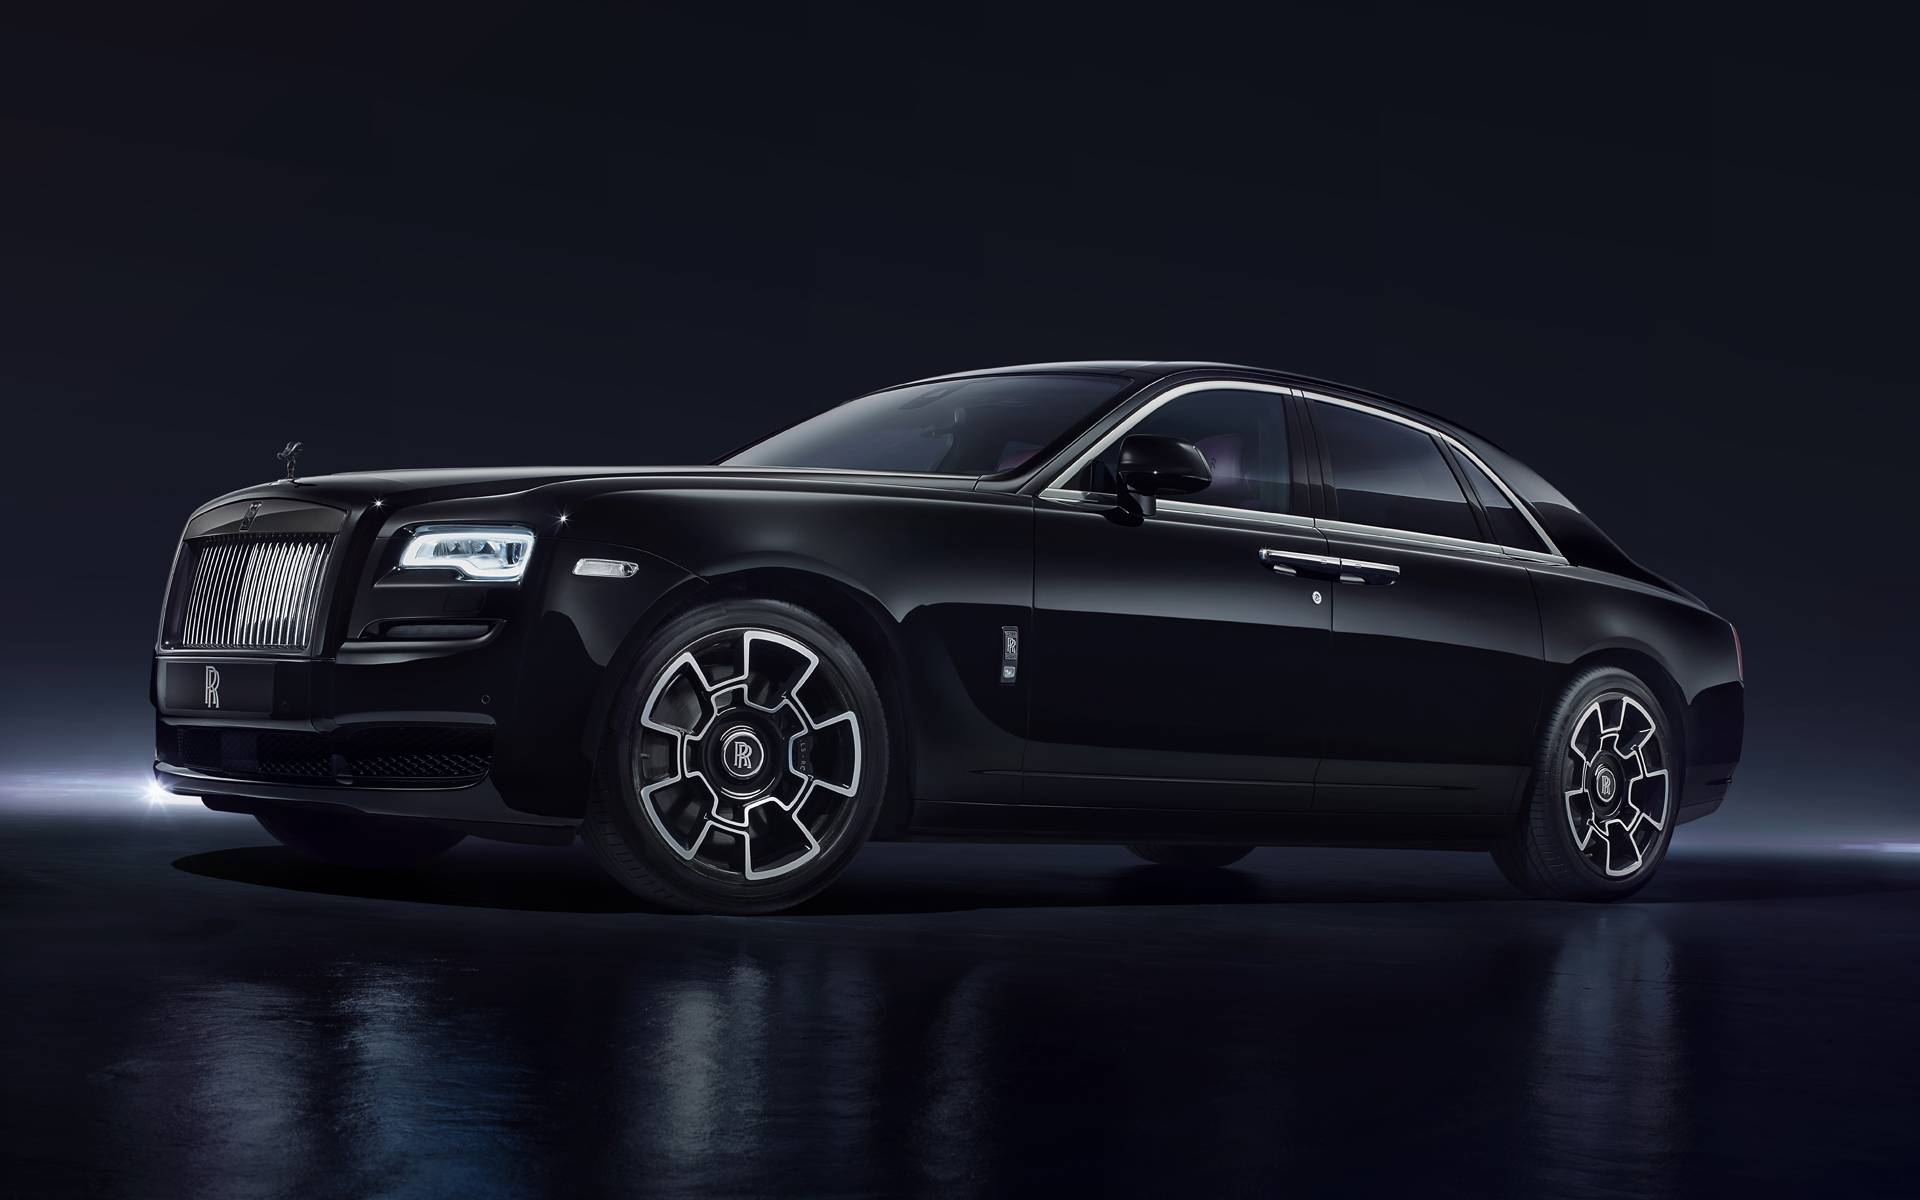 2020 Rolls Royce Ghost Black Badge Specifications The Car Guide